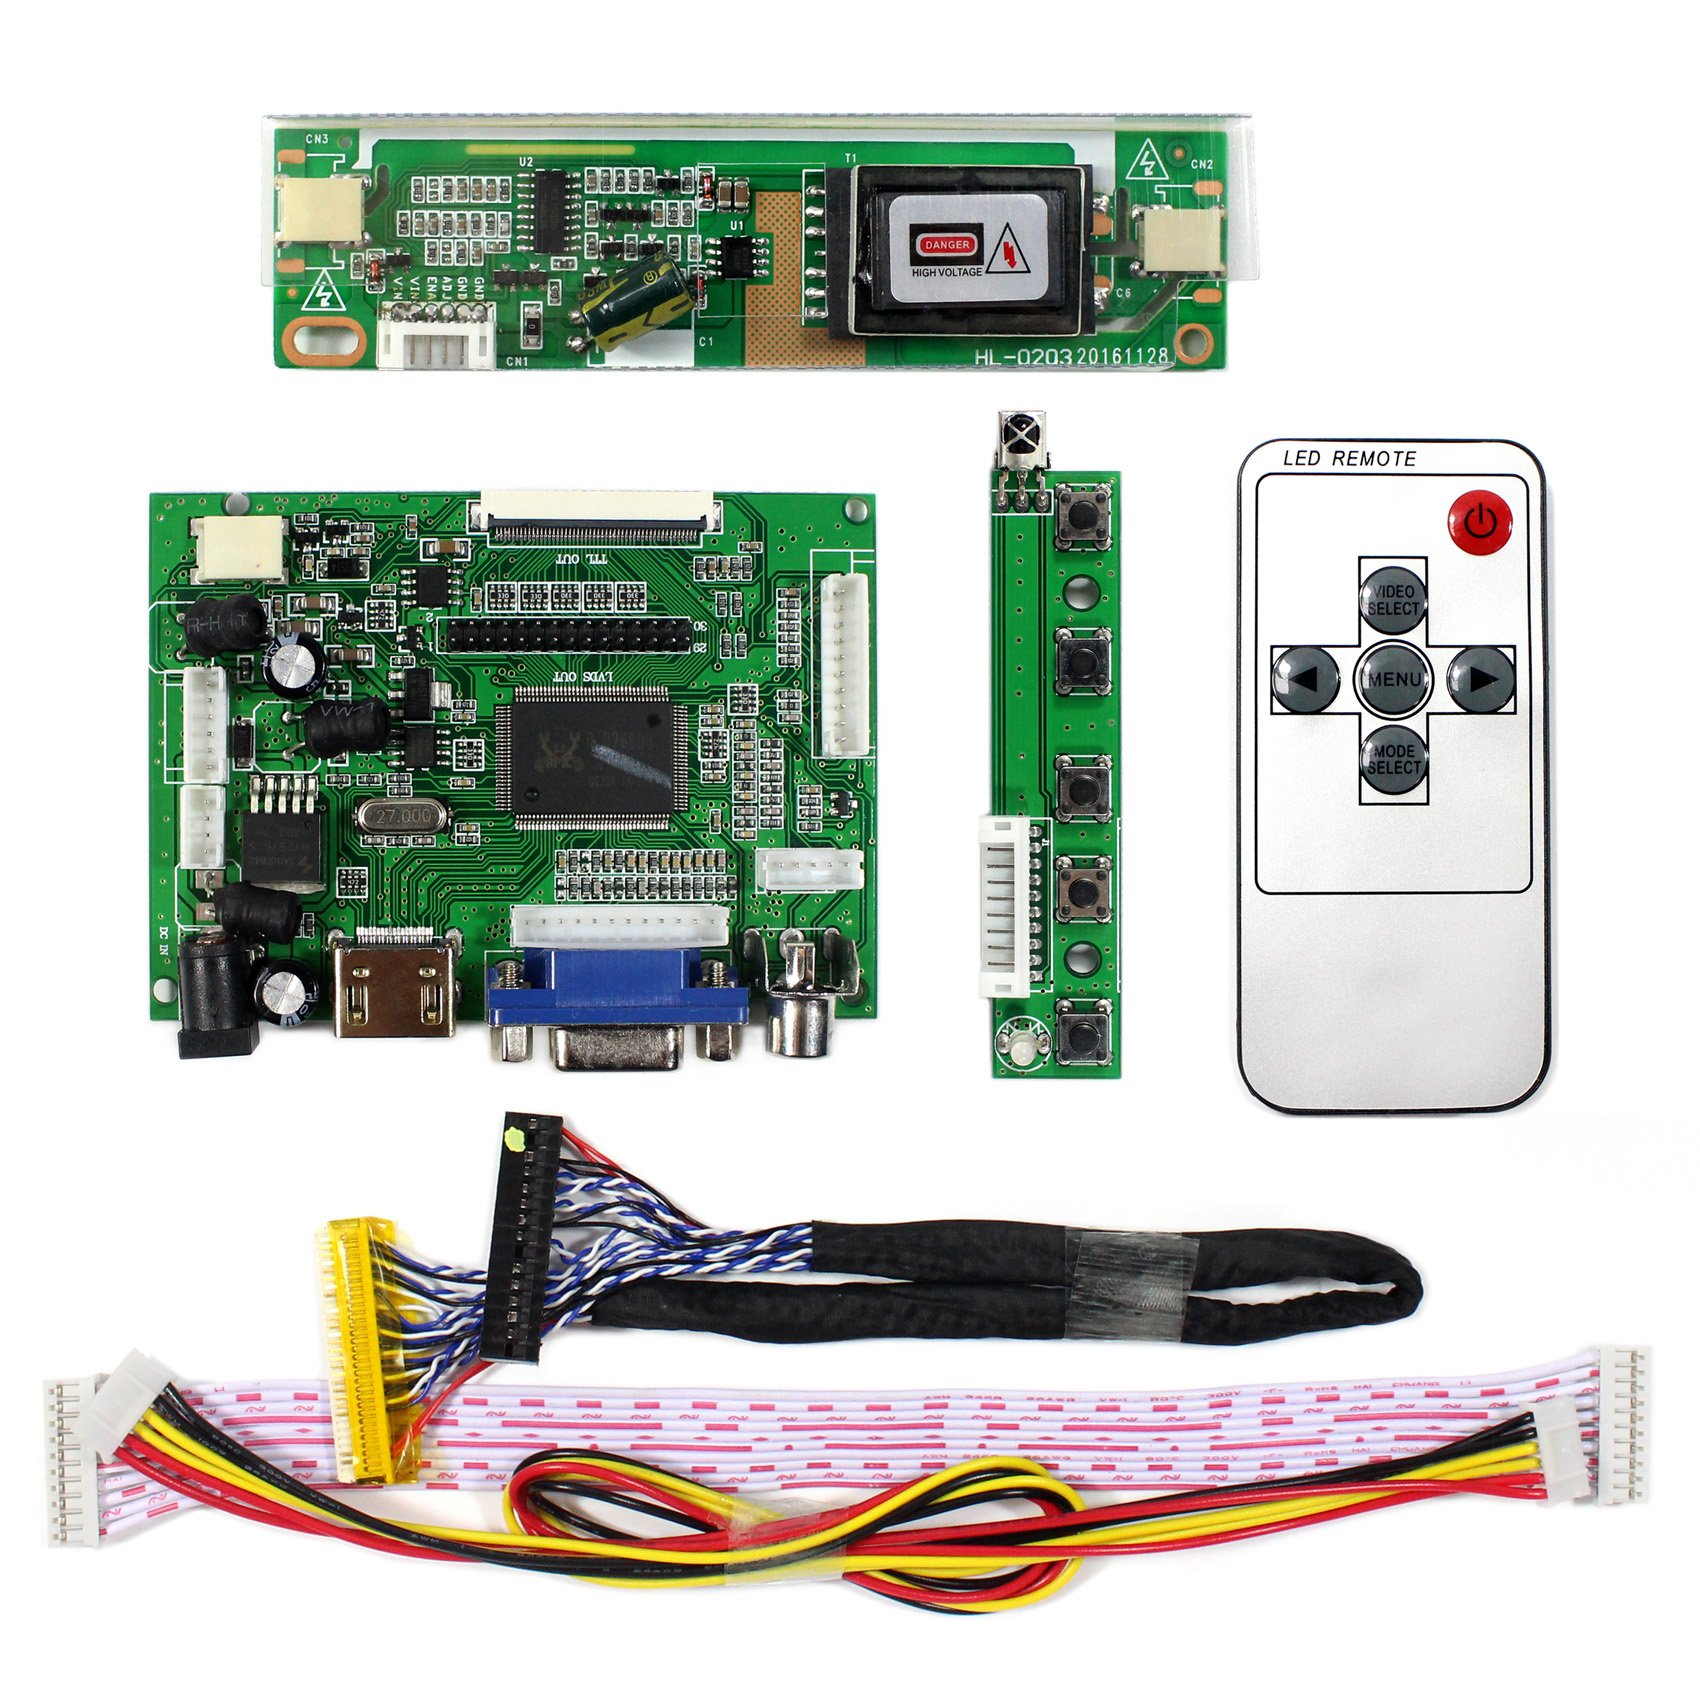 HDMI+VGA+2AV Input LCD Controller Board For B170PW04 LM171W02-TLB2 17'' 1440x900 2CCFL 30Pins LCD Panel by LCDBOARD (Image #2)